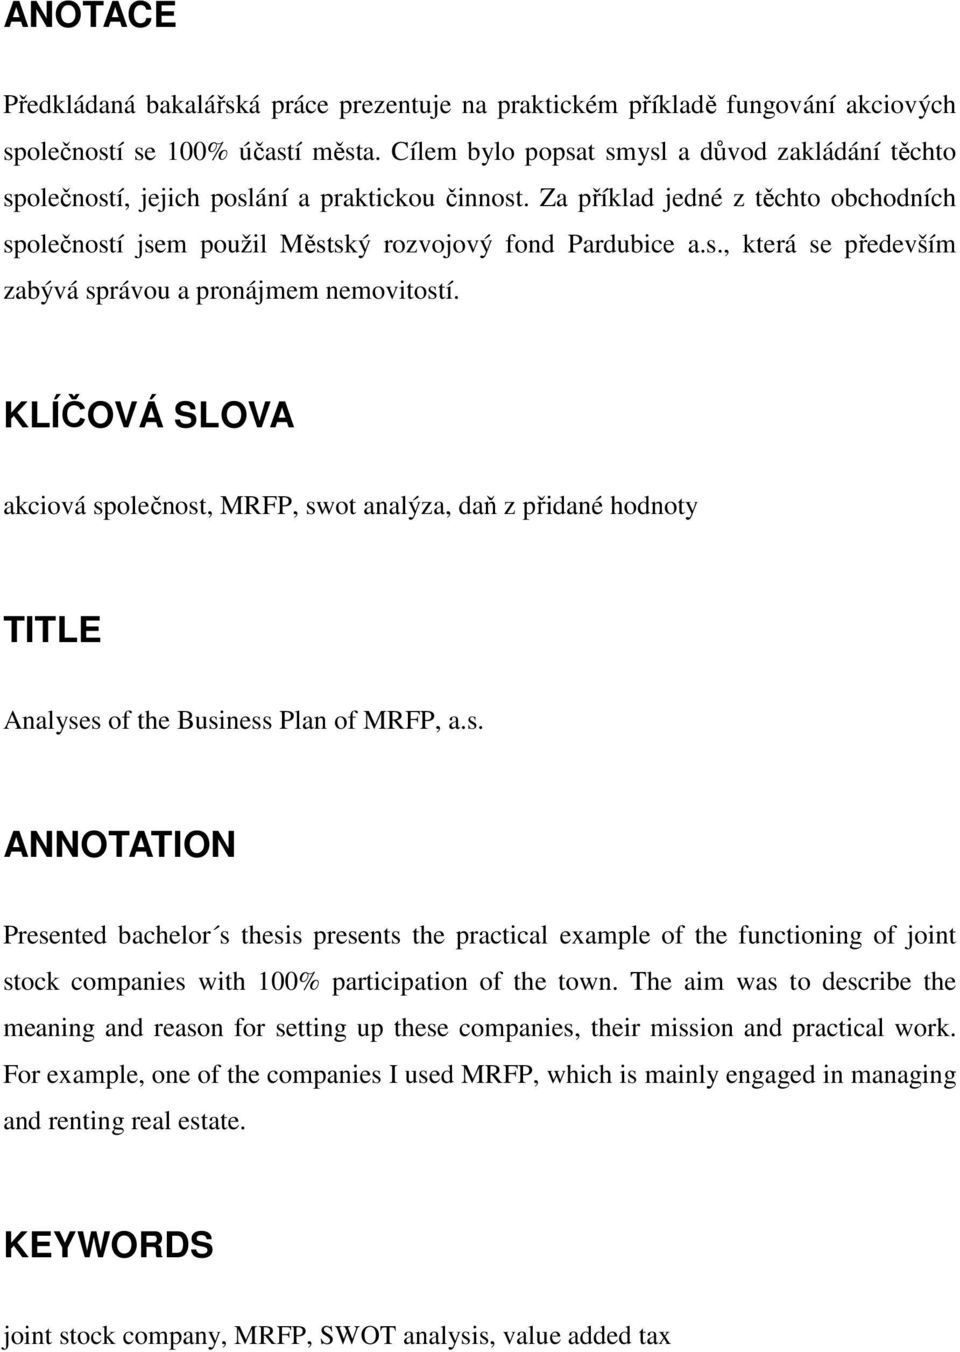 KLÍČOVÁ SLOVA akciová společnost, MRFP, swot analýza, daň z přidané hodnoty TITLE Analyses of the Business Plan of MRFP, a.s. ANNOTATION Presented bachelor s thesis presents the practical example of the functioning of joint stock companies with 100% participation of the town.